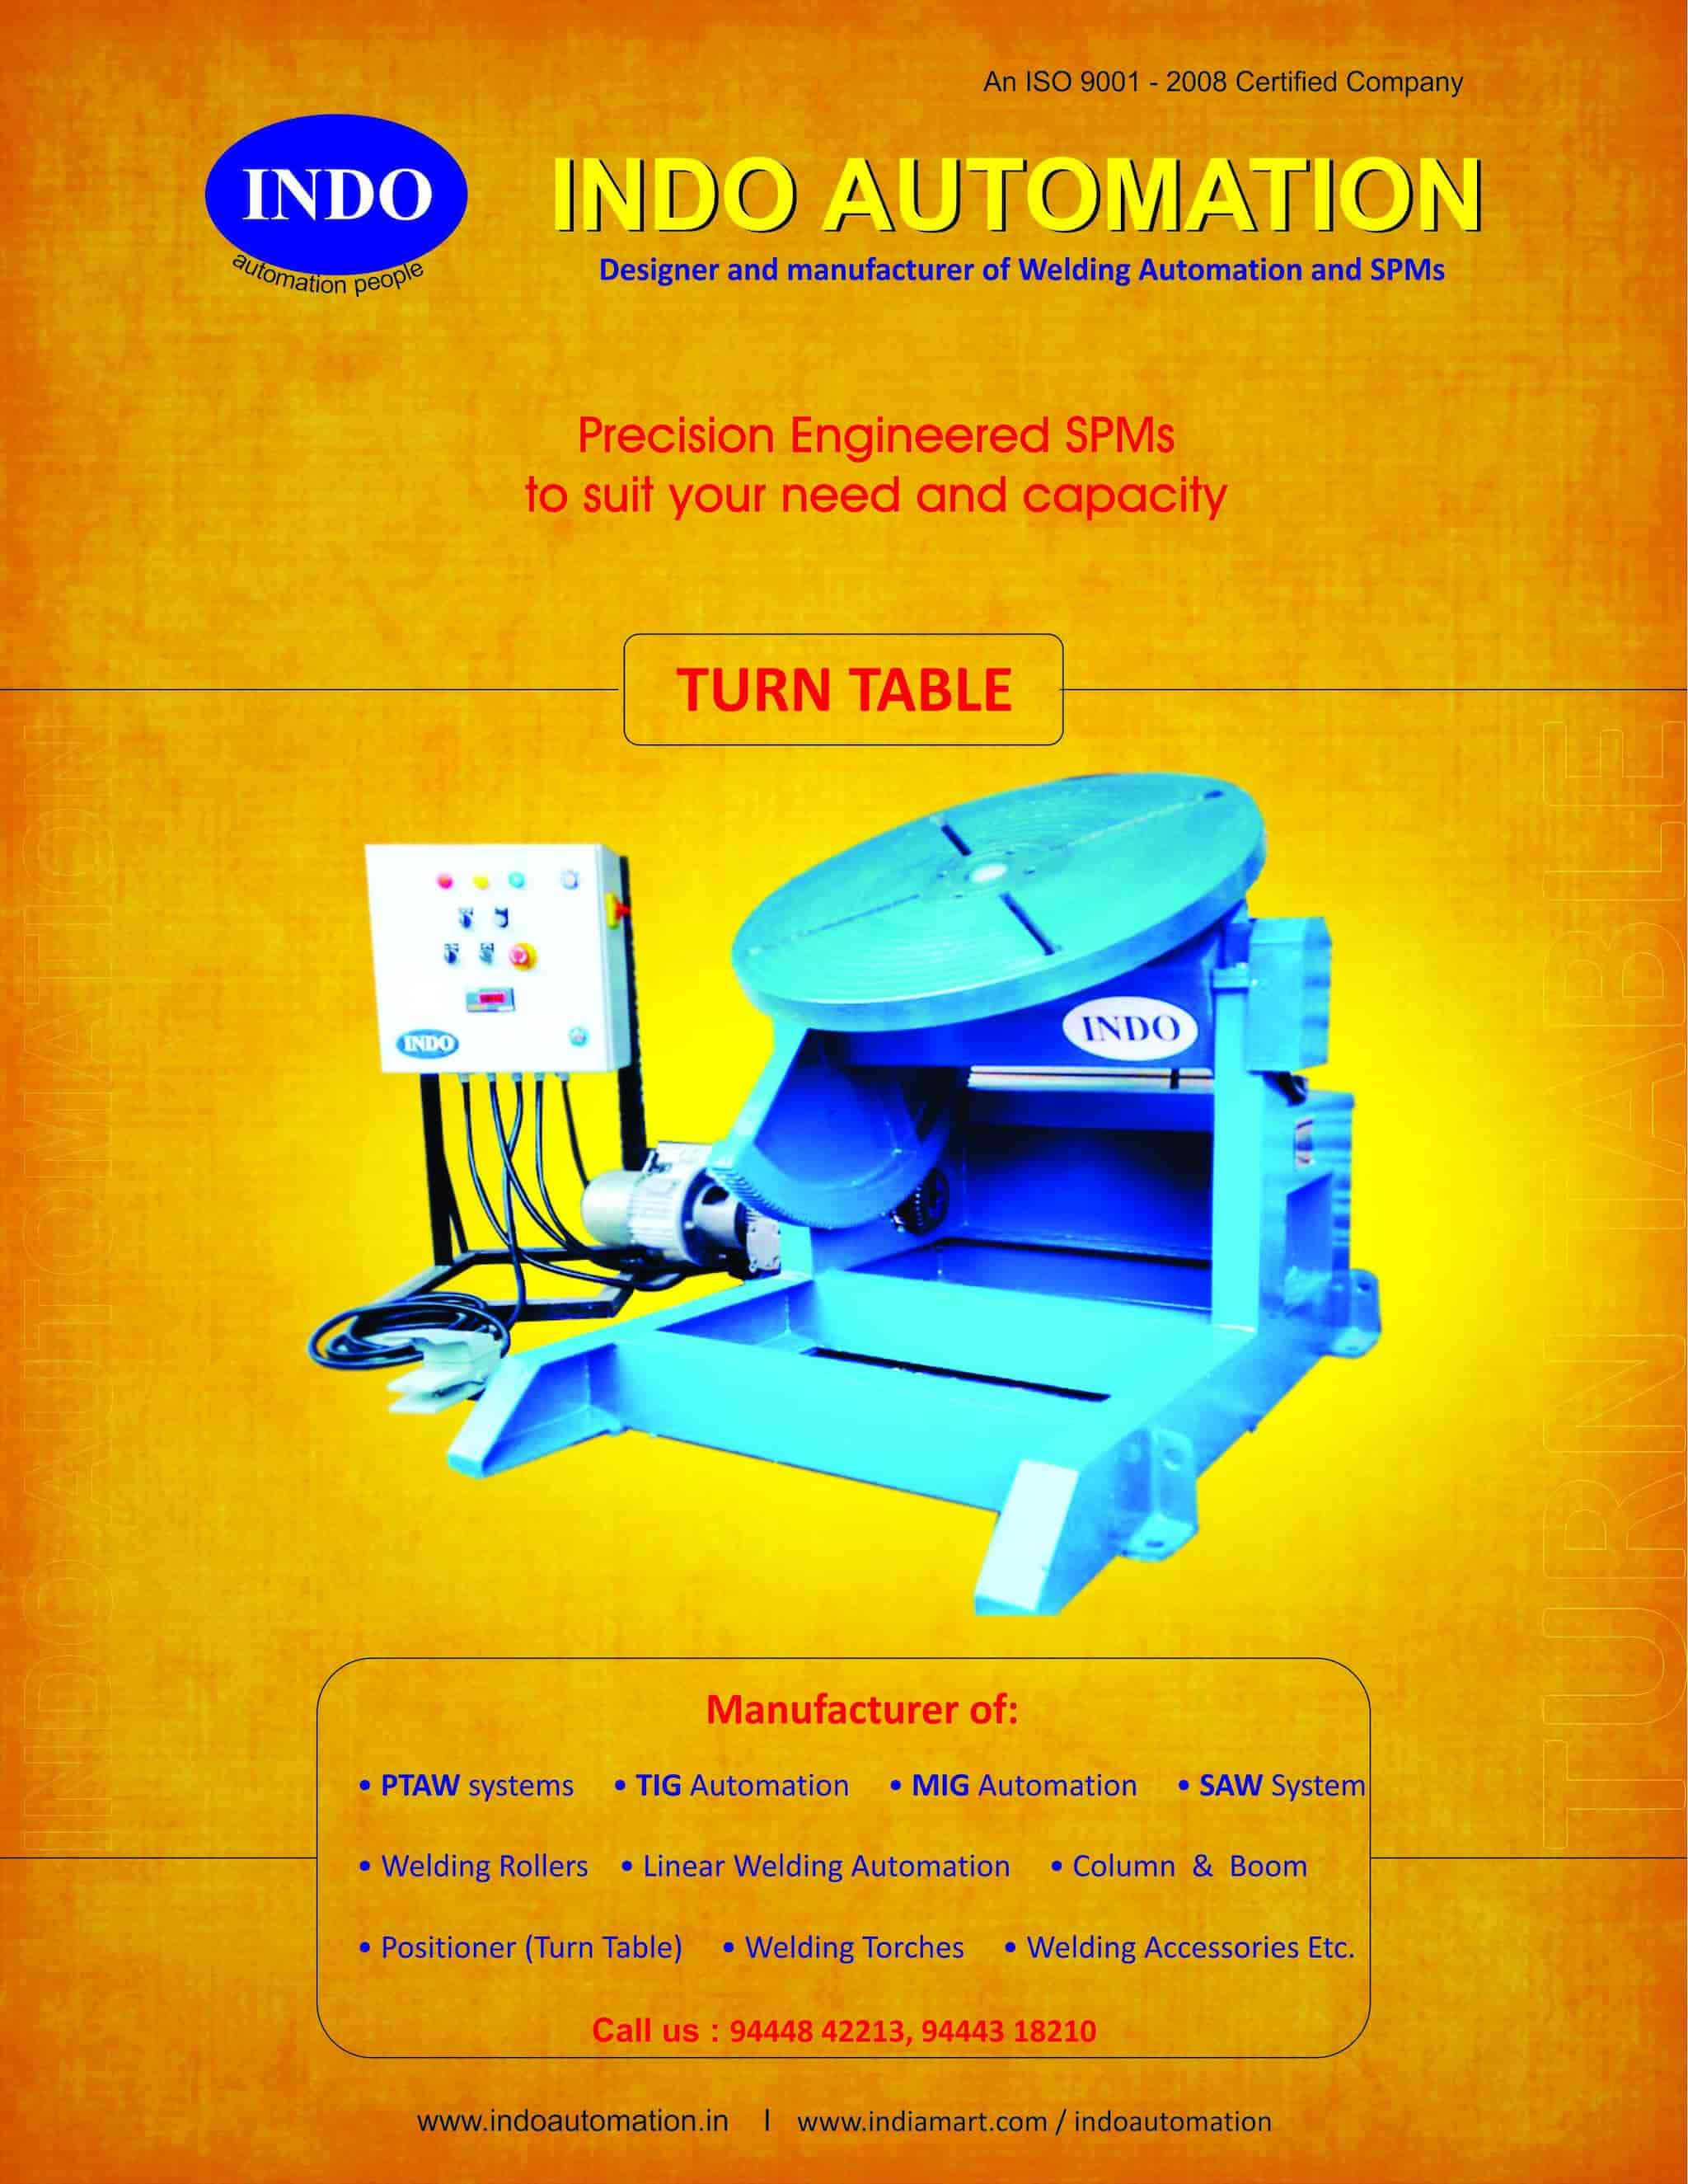 Indo Automation Photos, Porur, Chennai- Pictures & Images Gallery